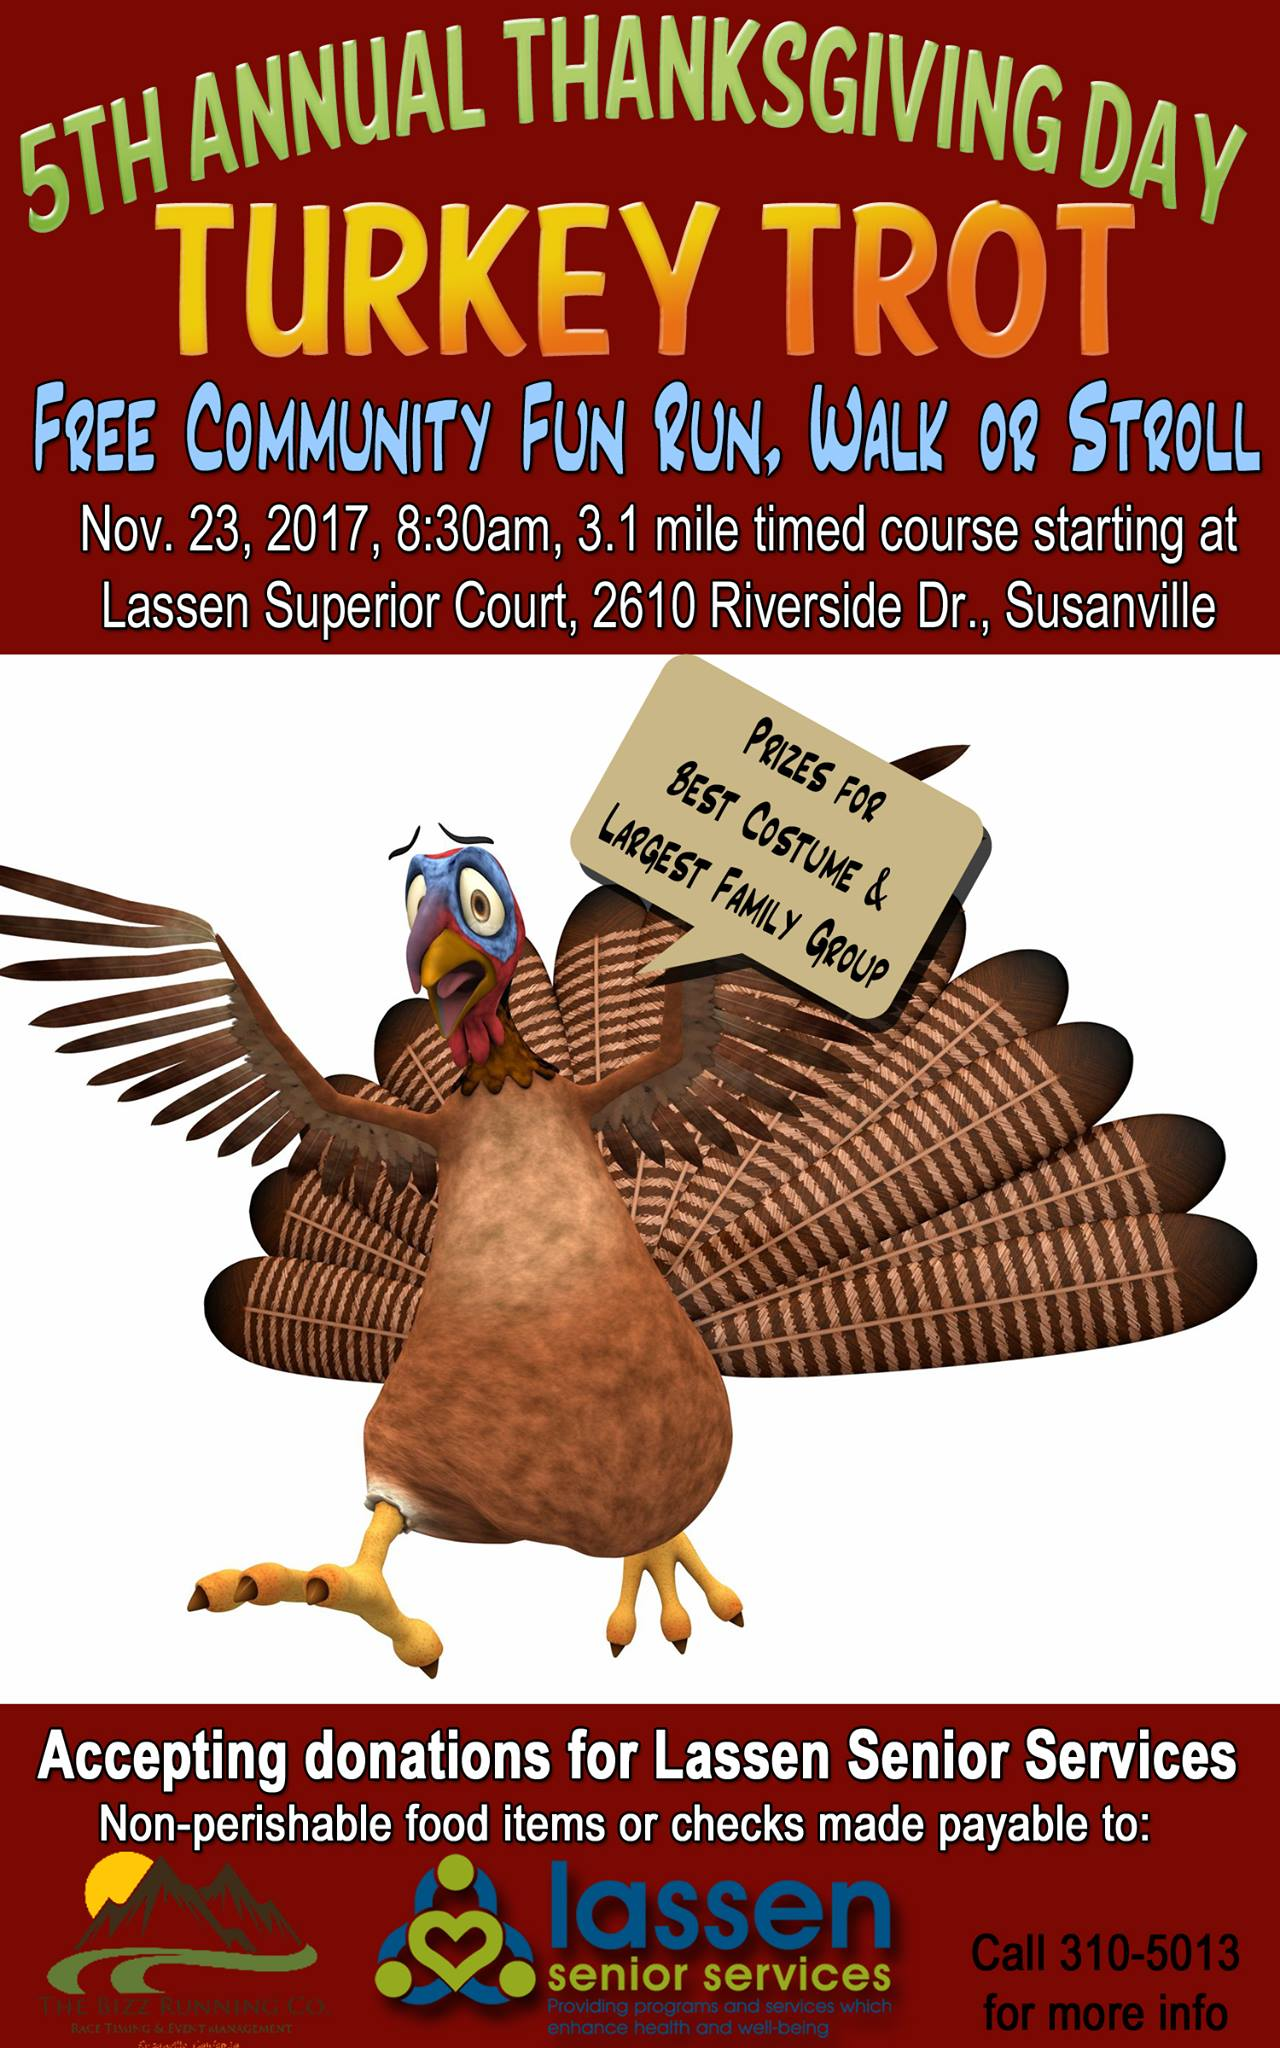 5th Annual Thanksgiving Day Turkey Trot